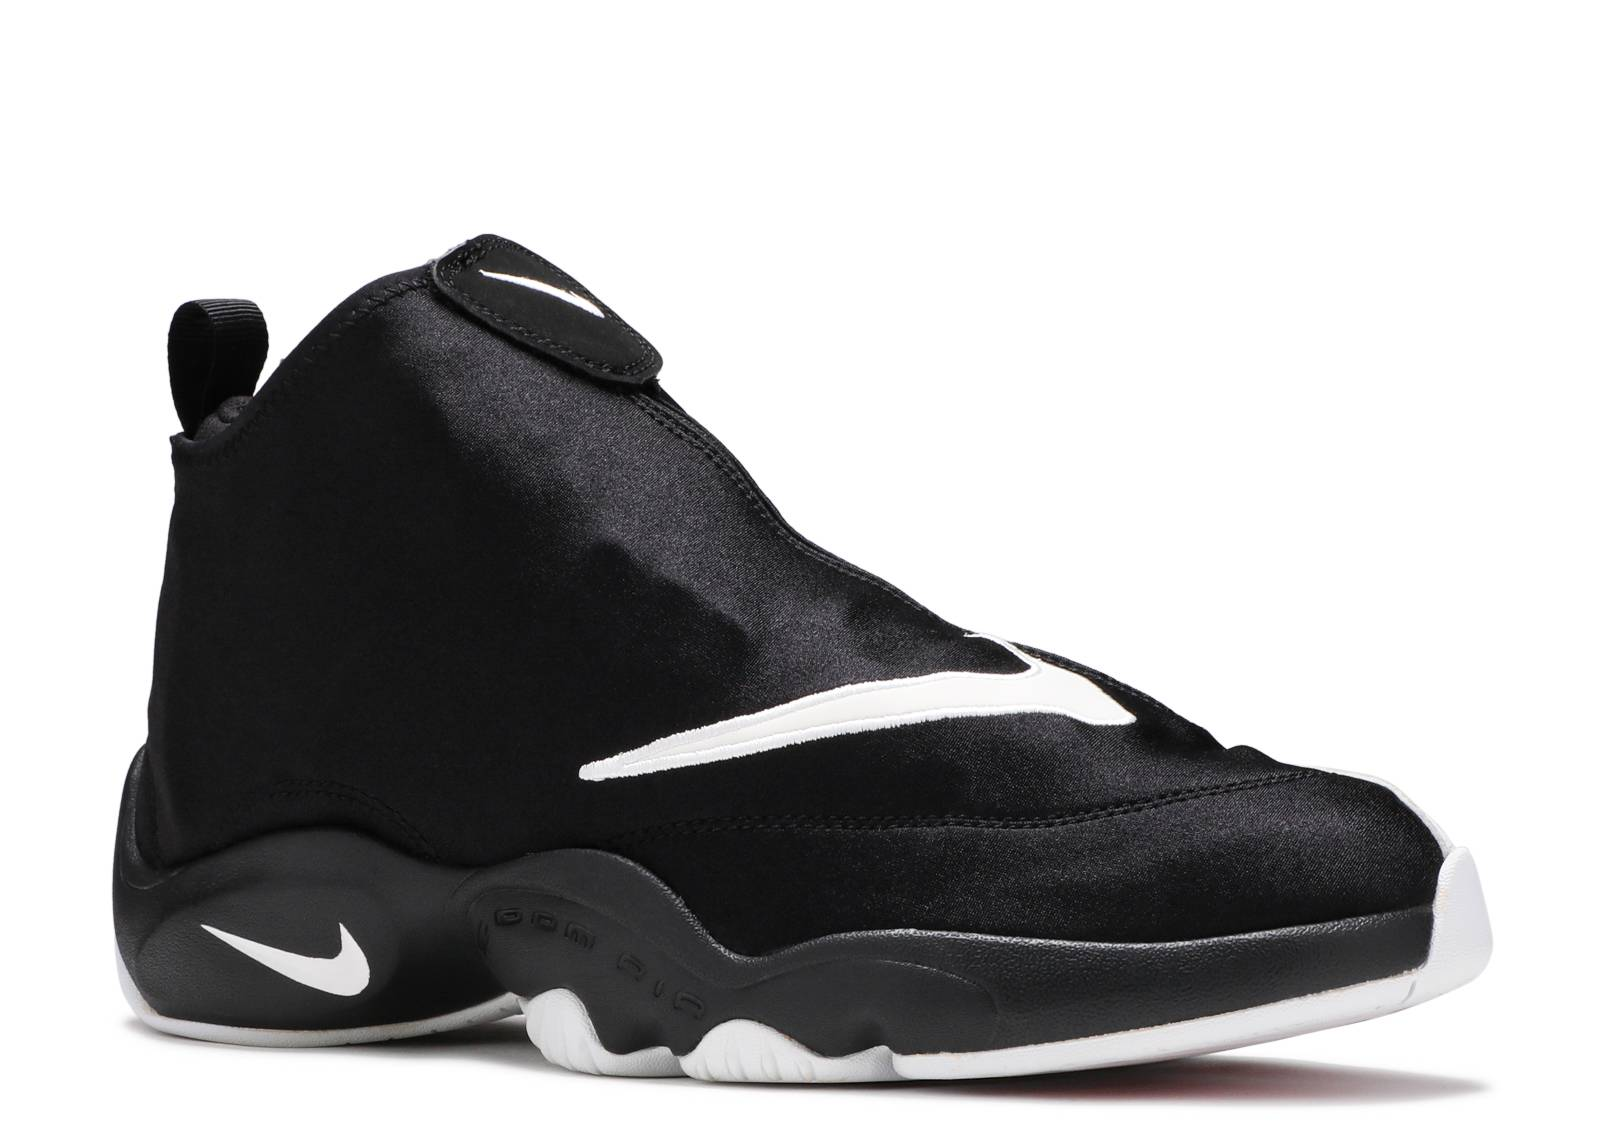 nike mens air zoom flight the glove basketball shoes